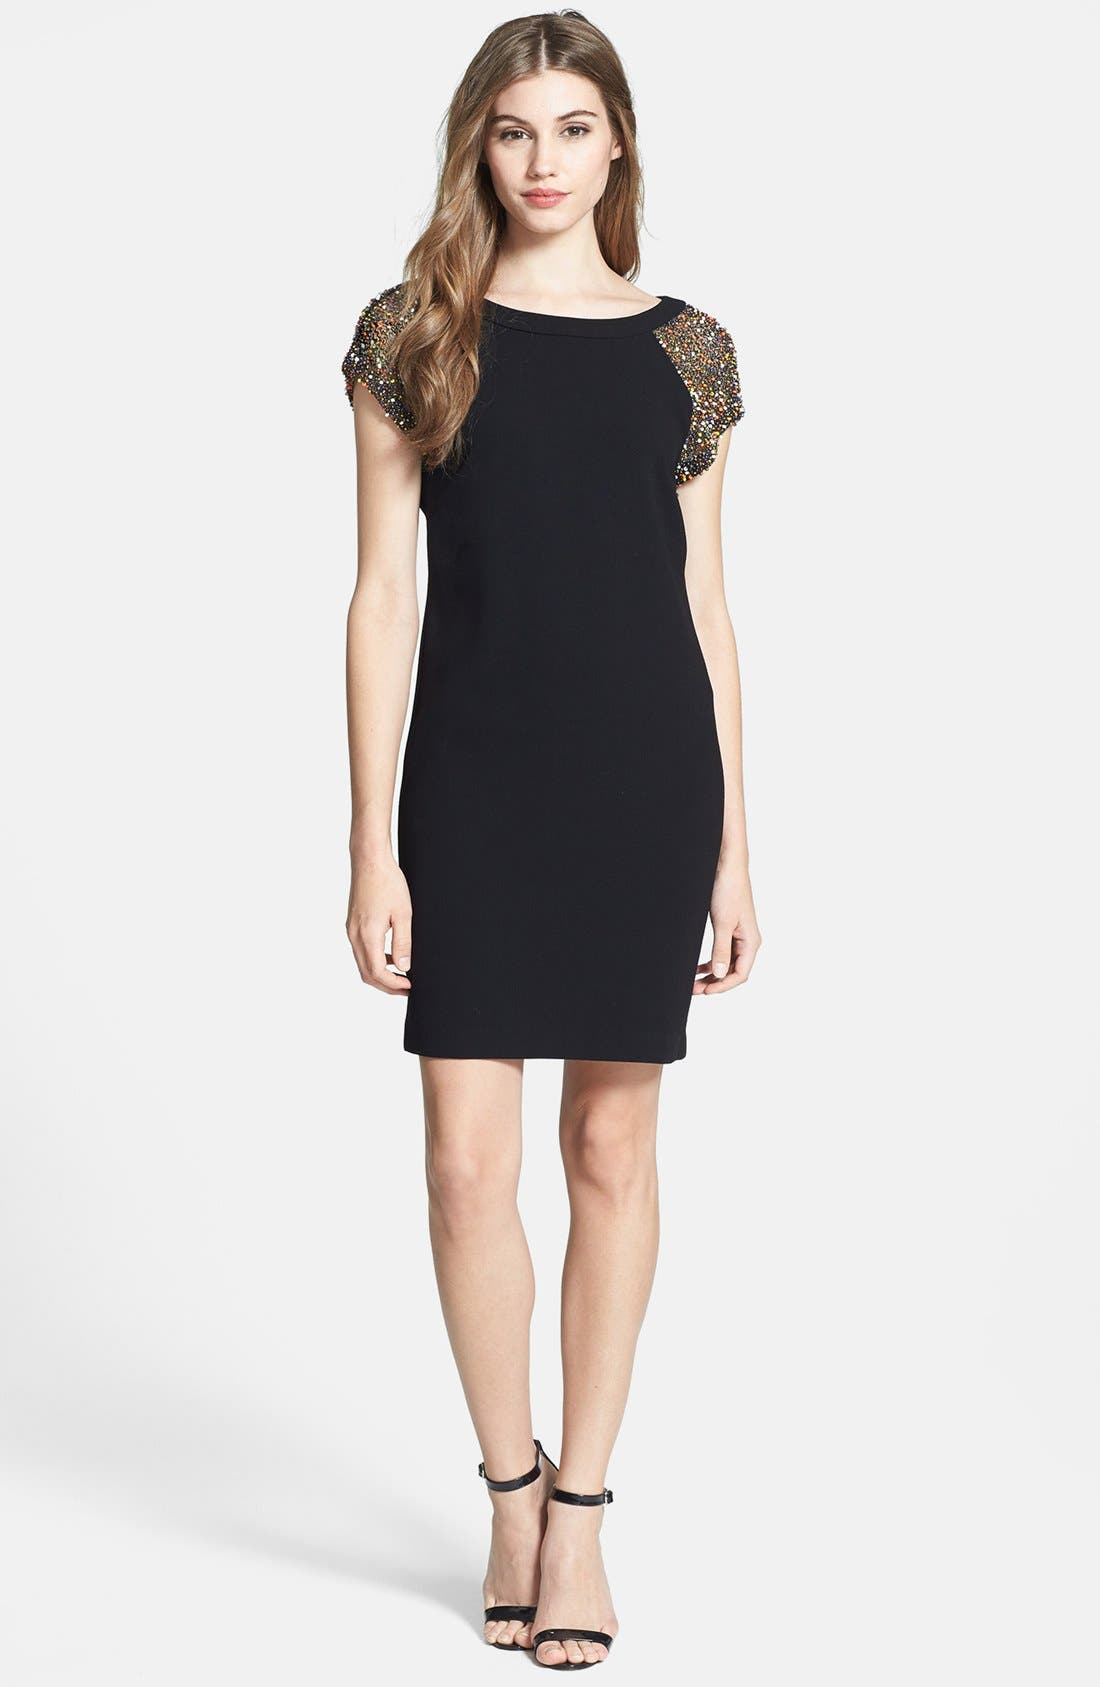 Alternate Image 1 Selected - Trina Turk 'Nettle' Embellished Crepe Dress